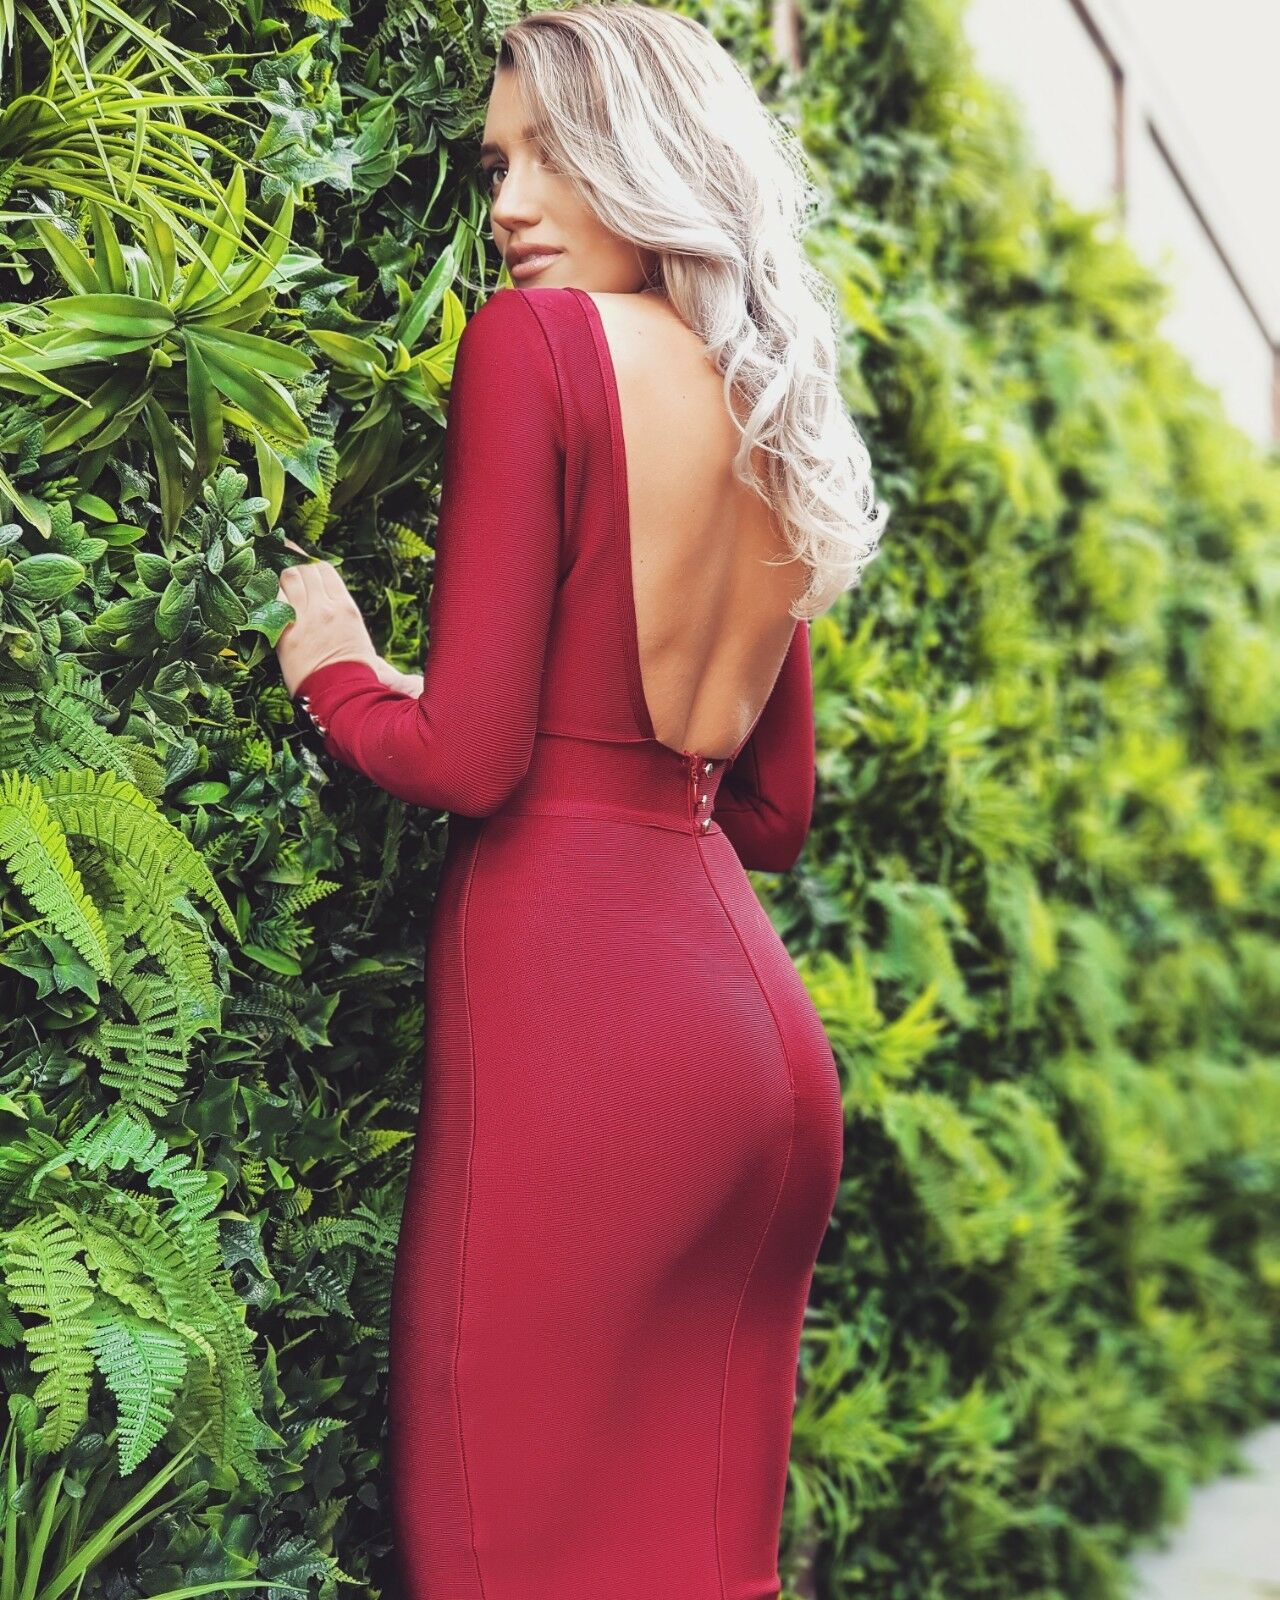 Fash1 rot Wine (burgundy) Backless Bandage Dress. Midi length xs